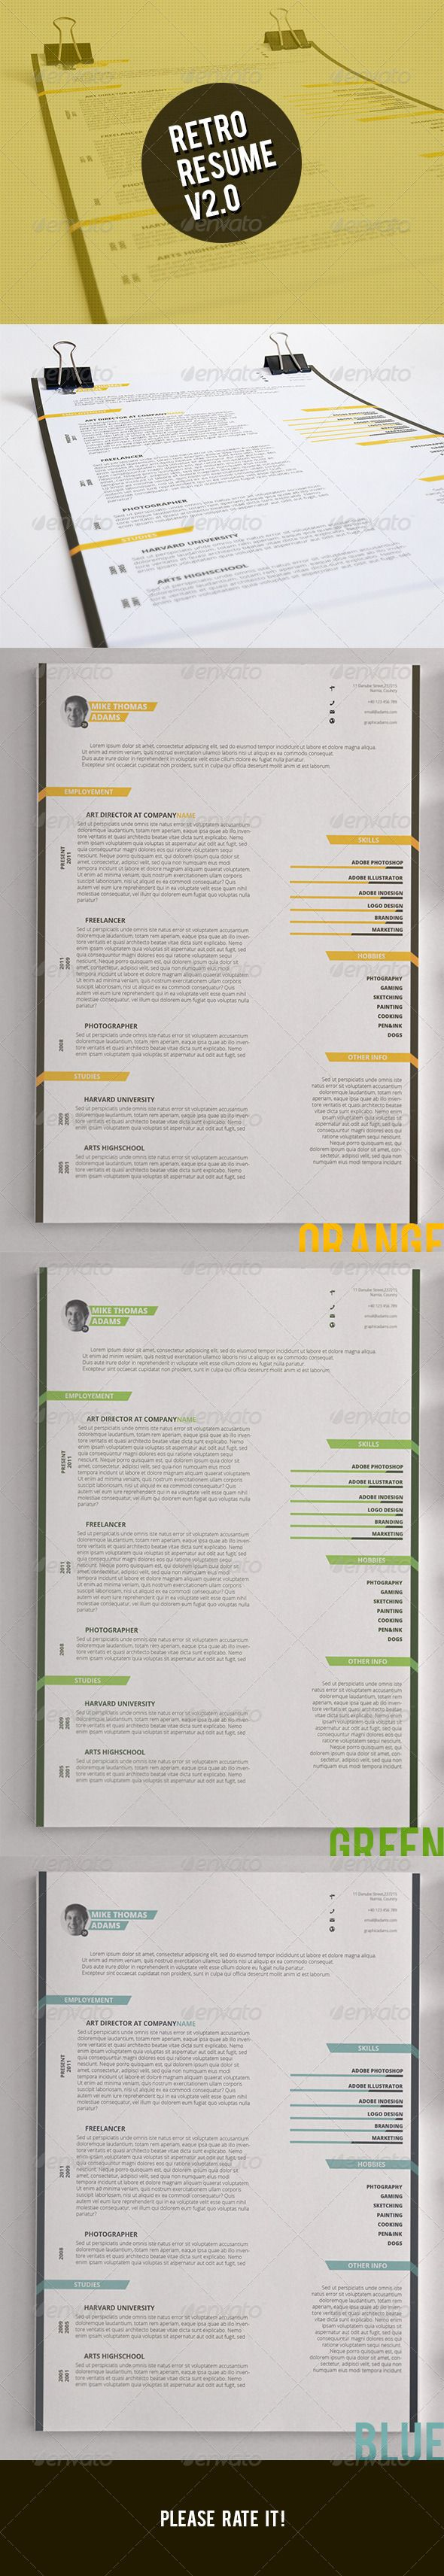 Retro Resume Template design Download httpgraphicrivernetitem 38